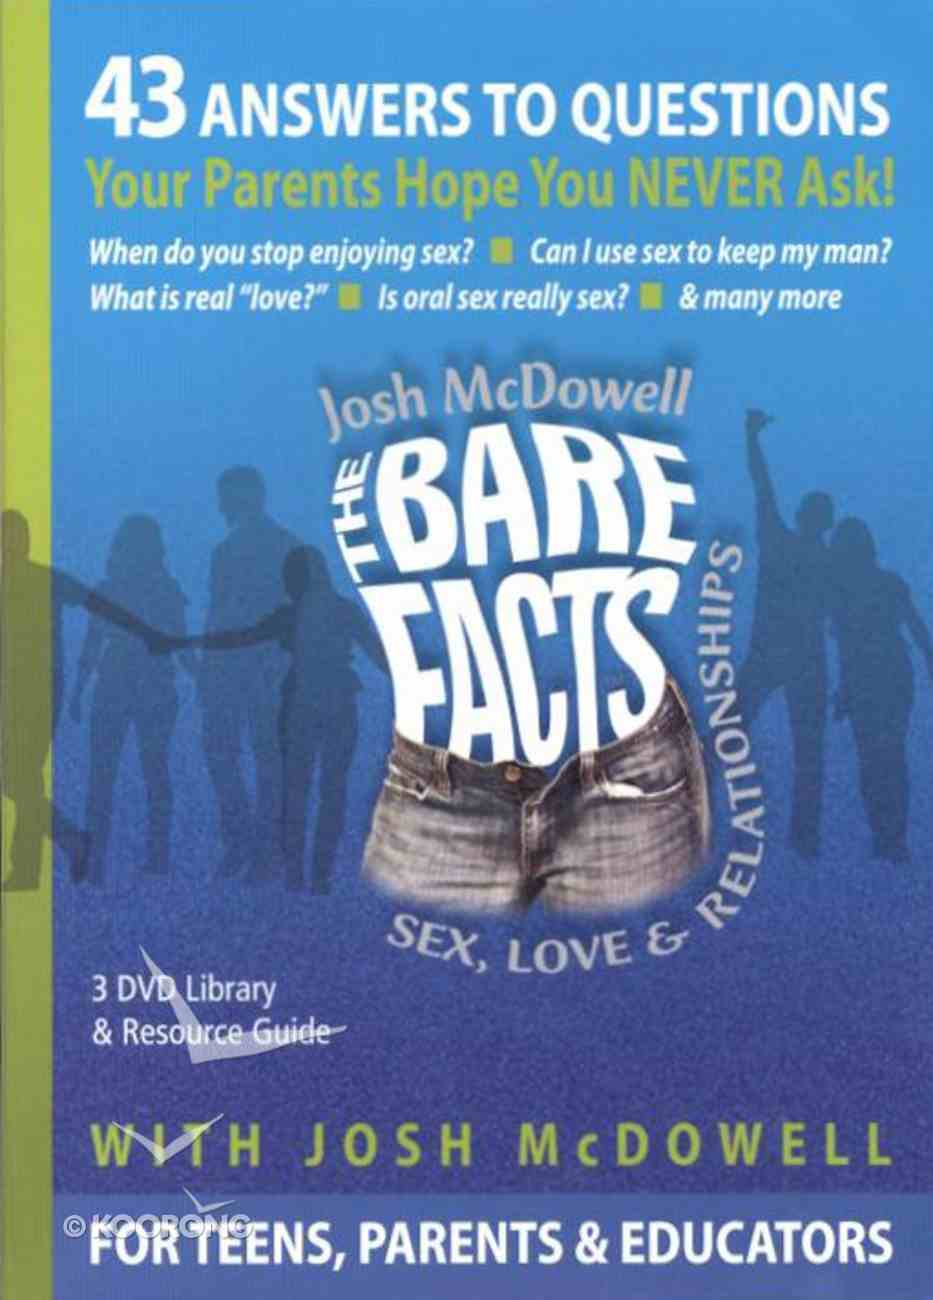 The Bare Facts DVD